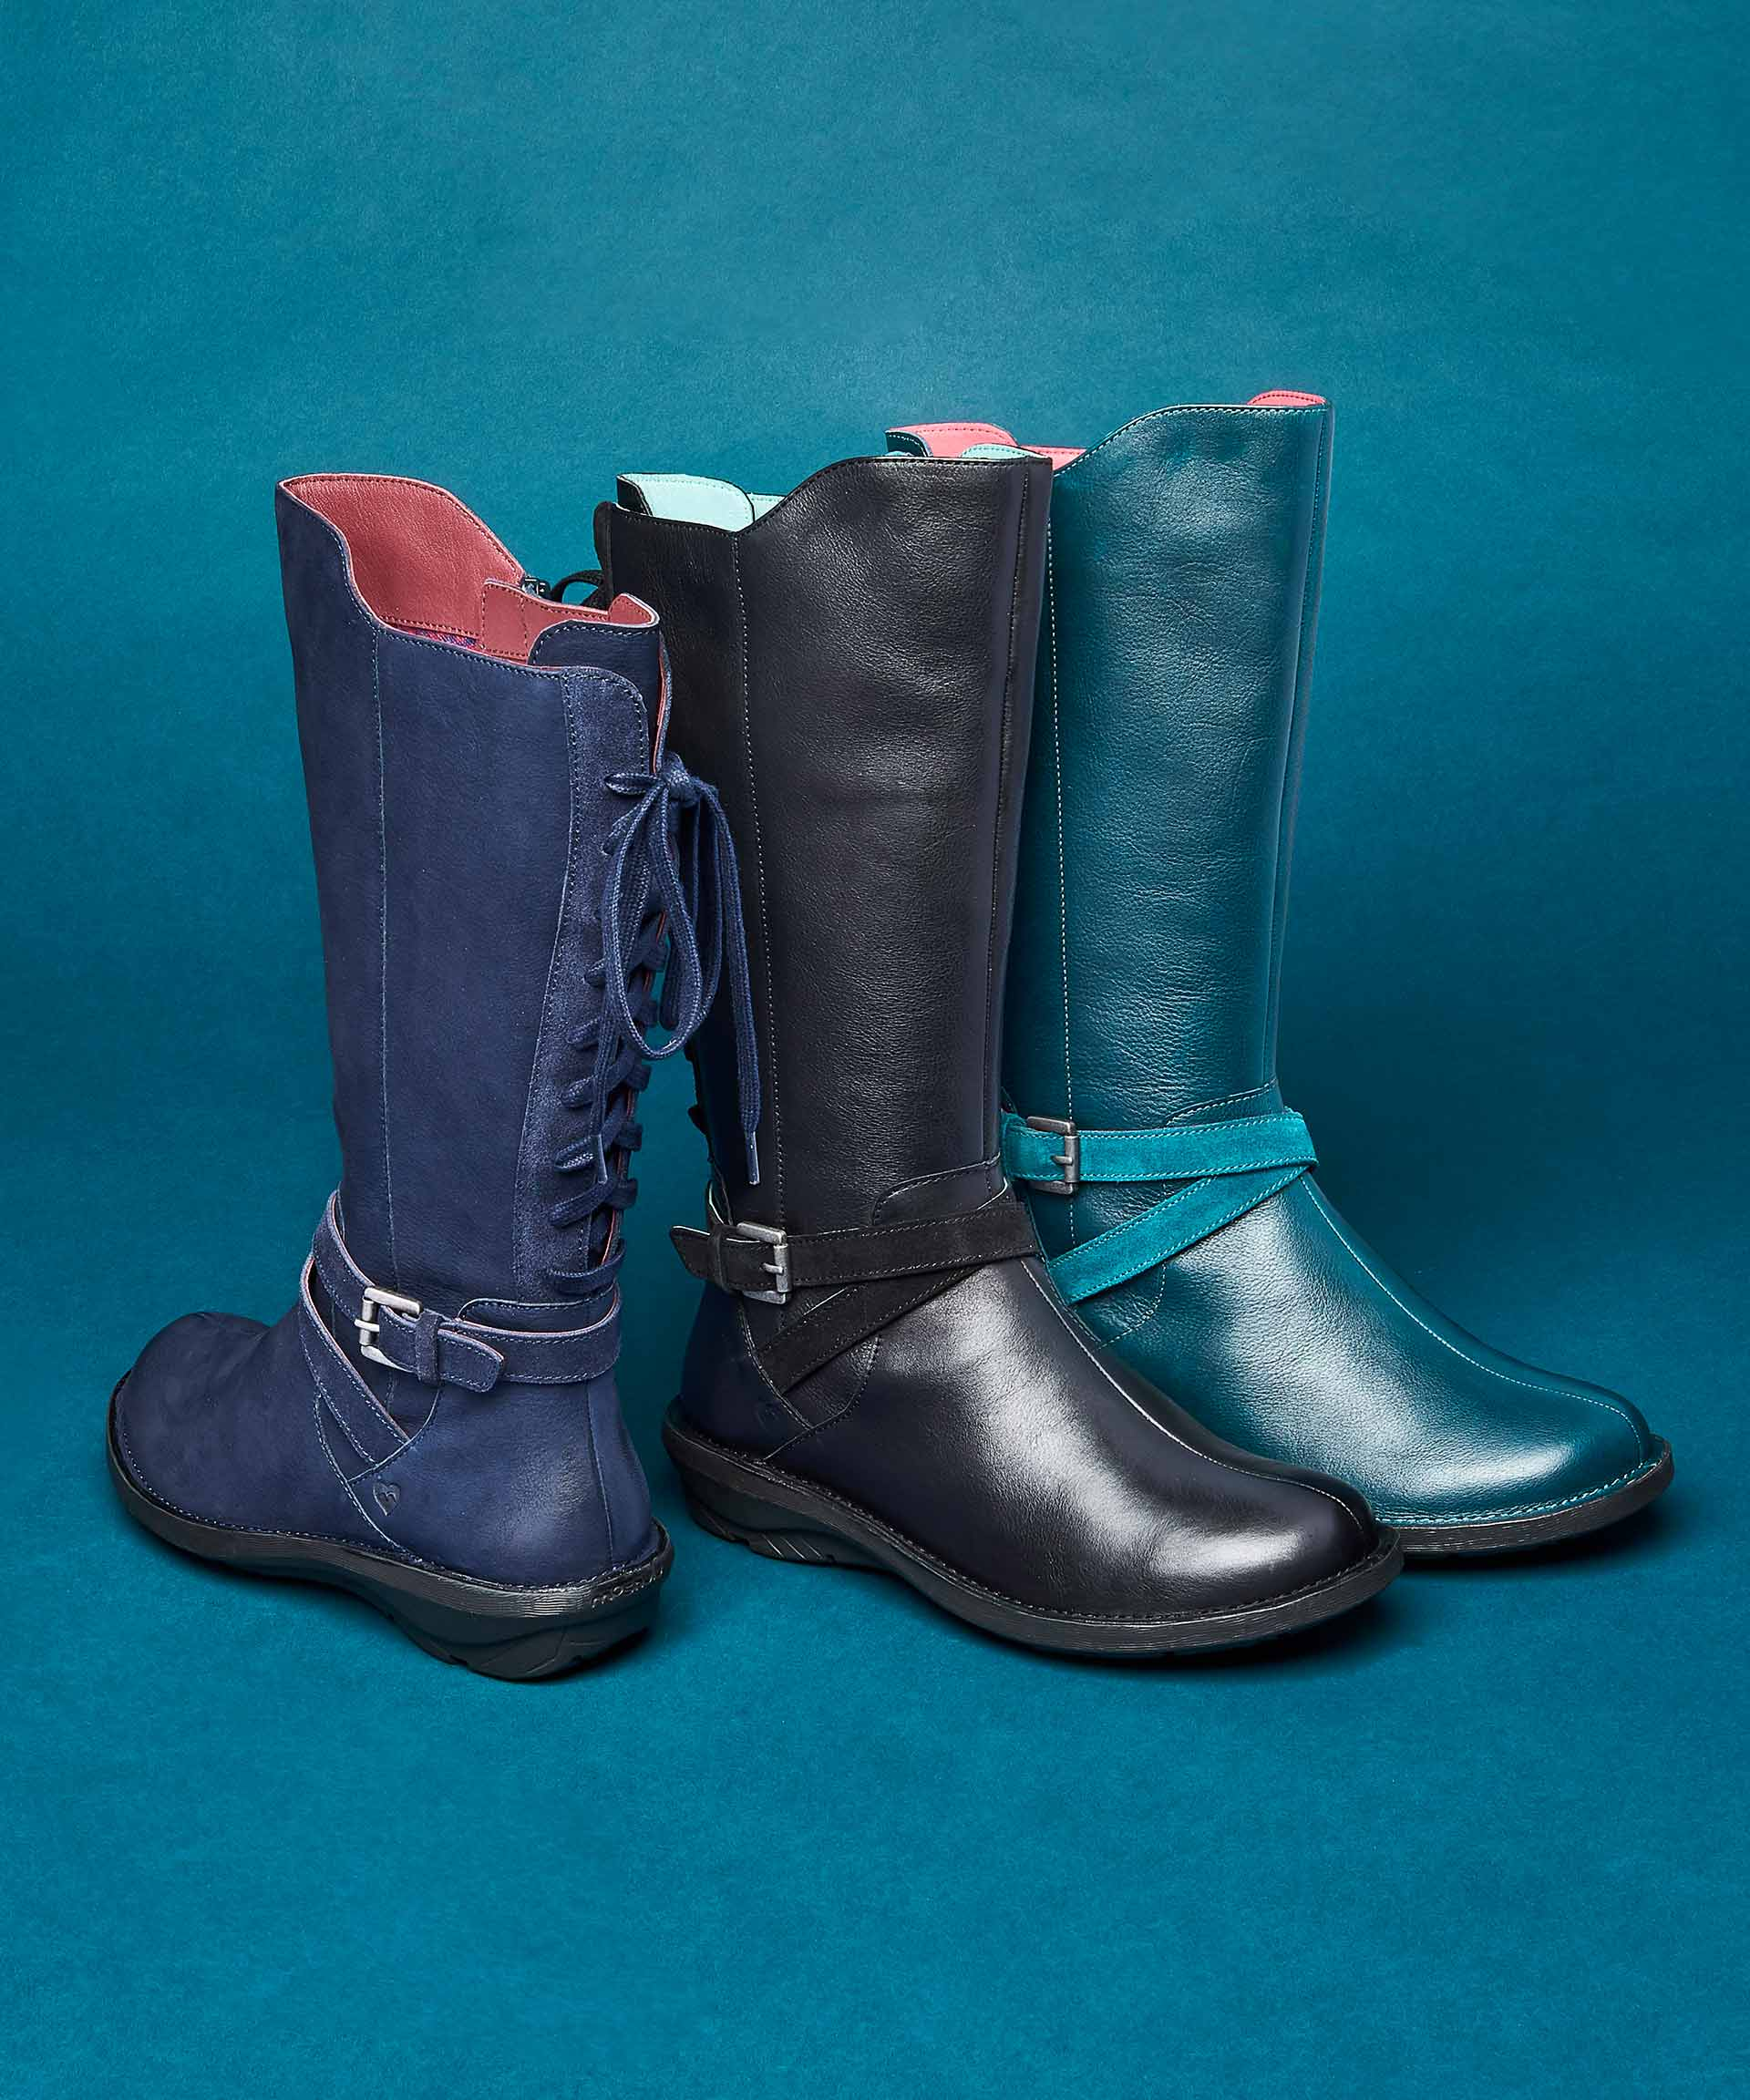 Llyn ladies lace up boots